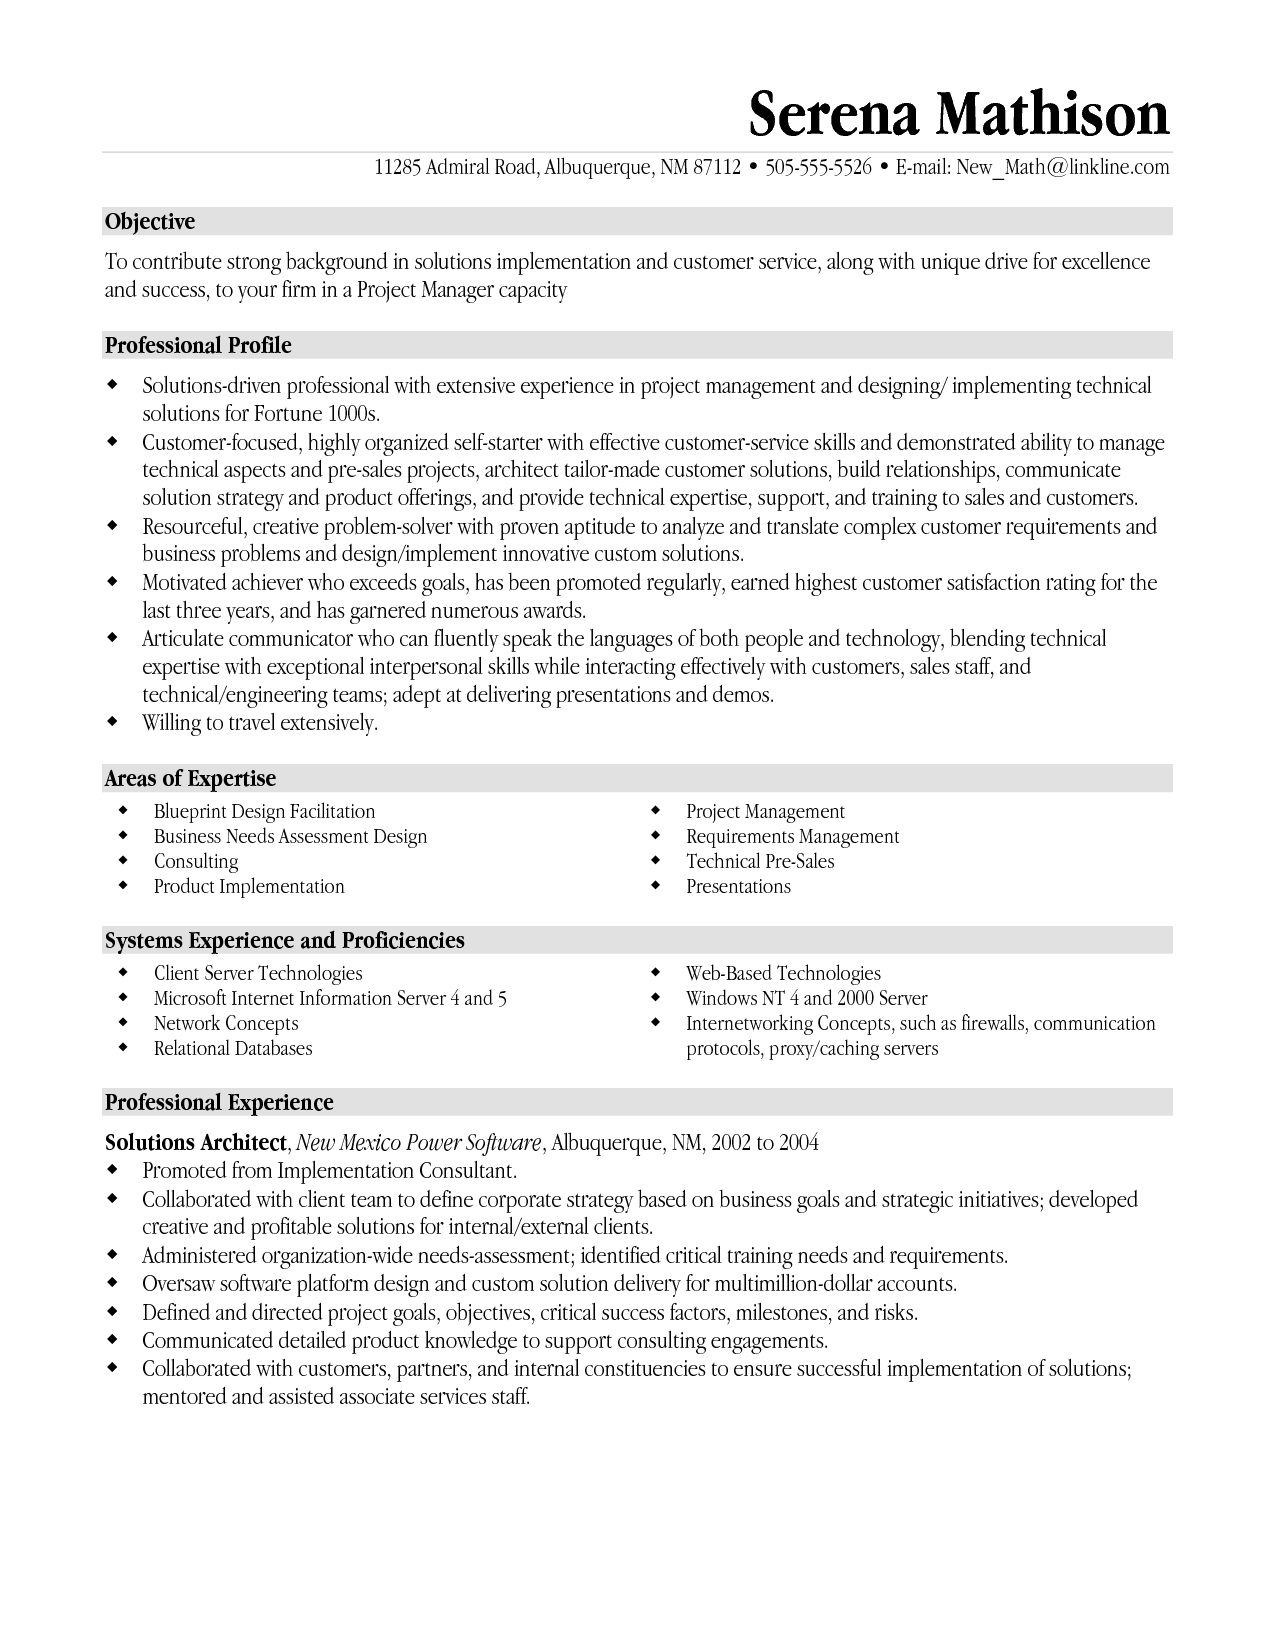 Resume Samples For Project Manager Project Management Resume Samples Free  Project Management Resume .  Examples Of Management Resumes